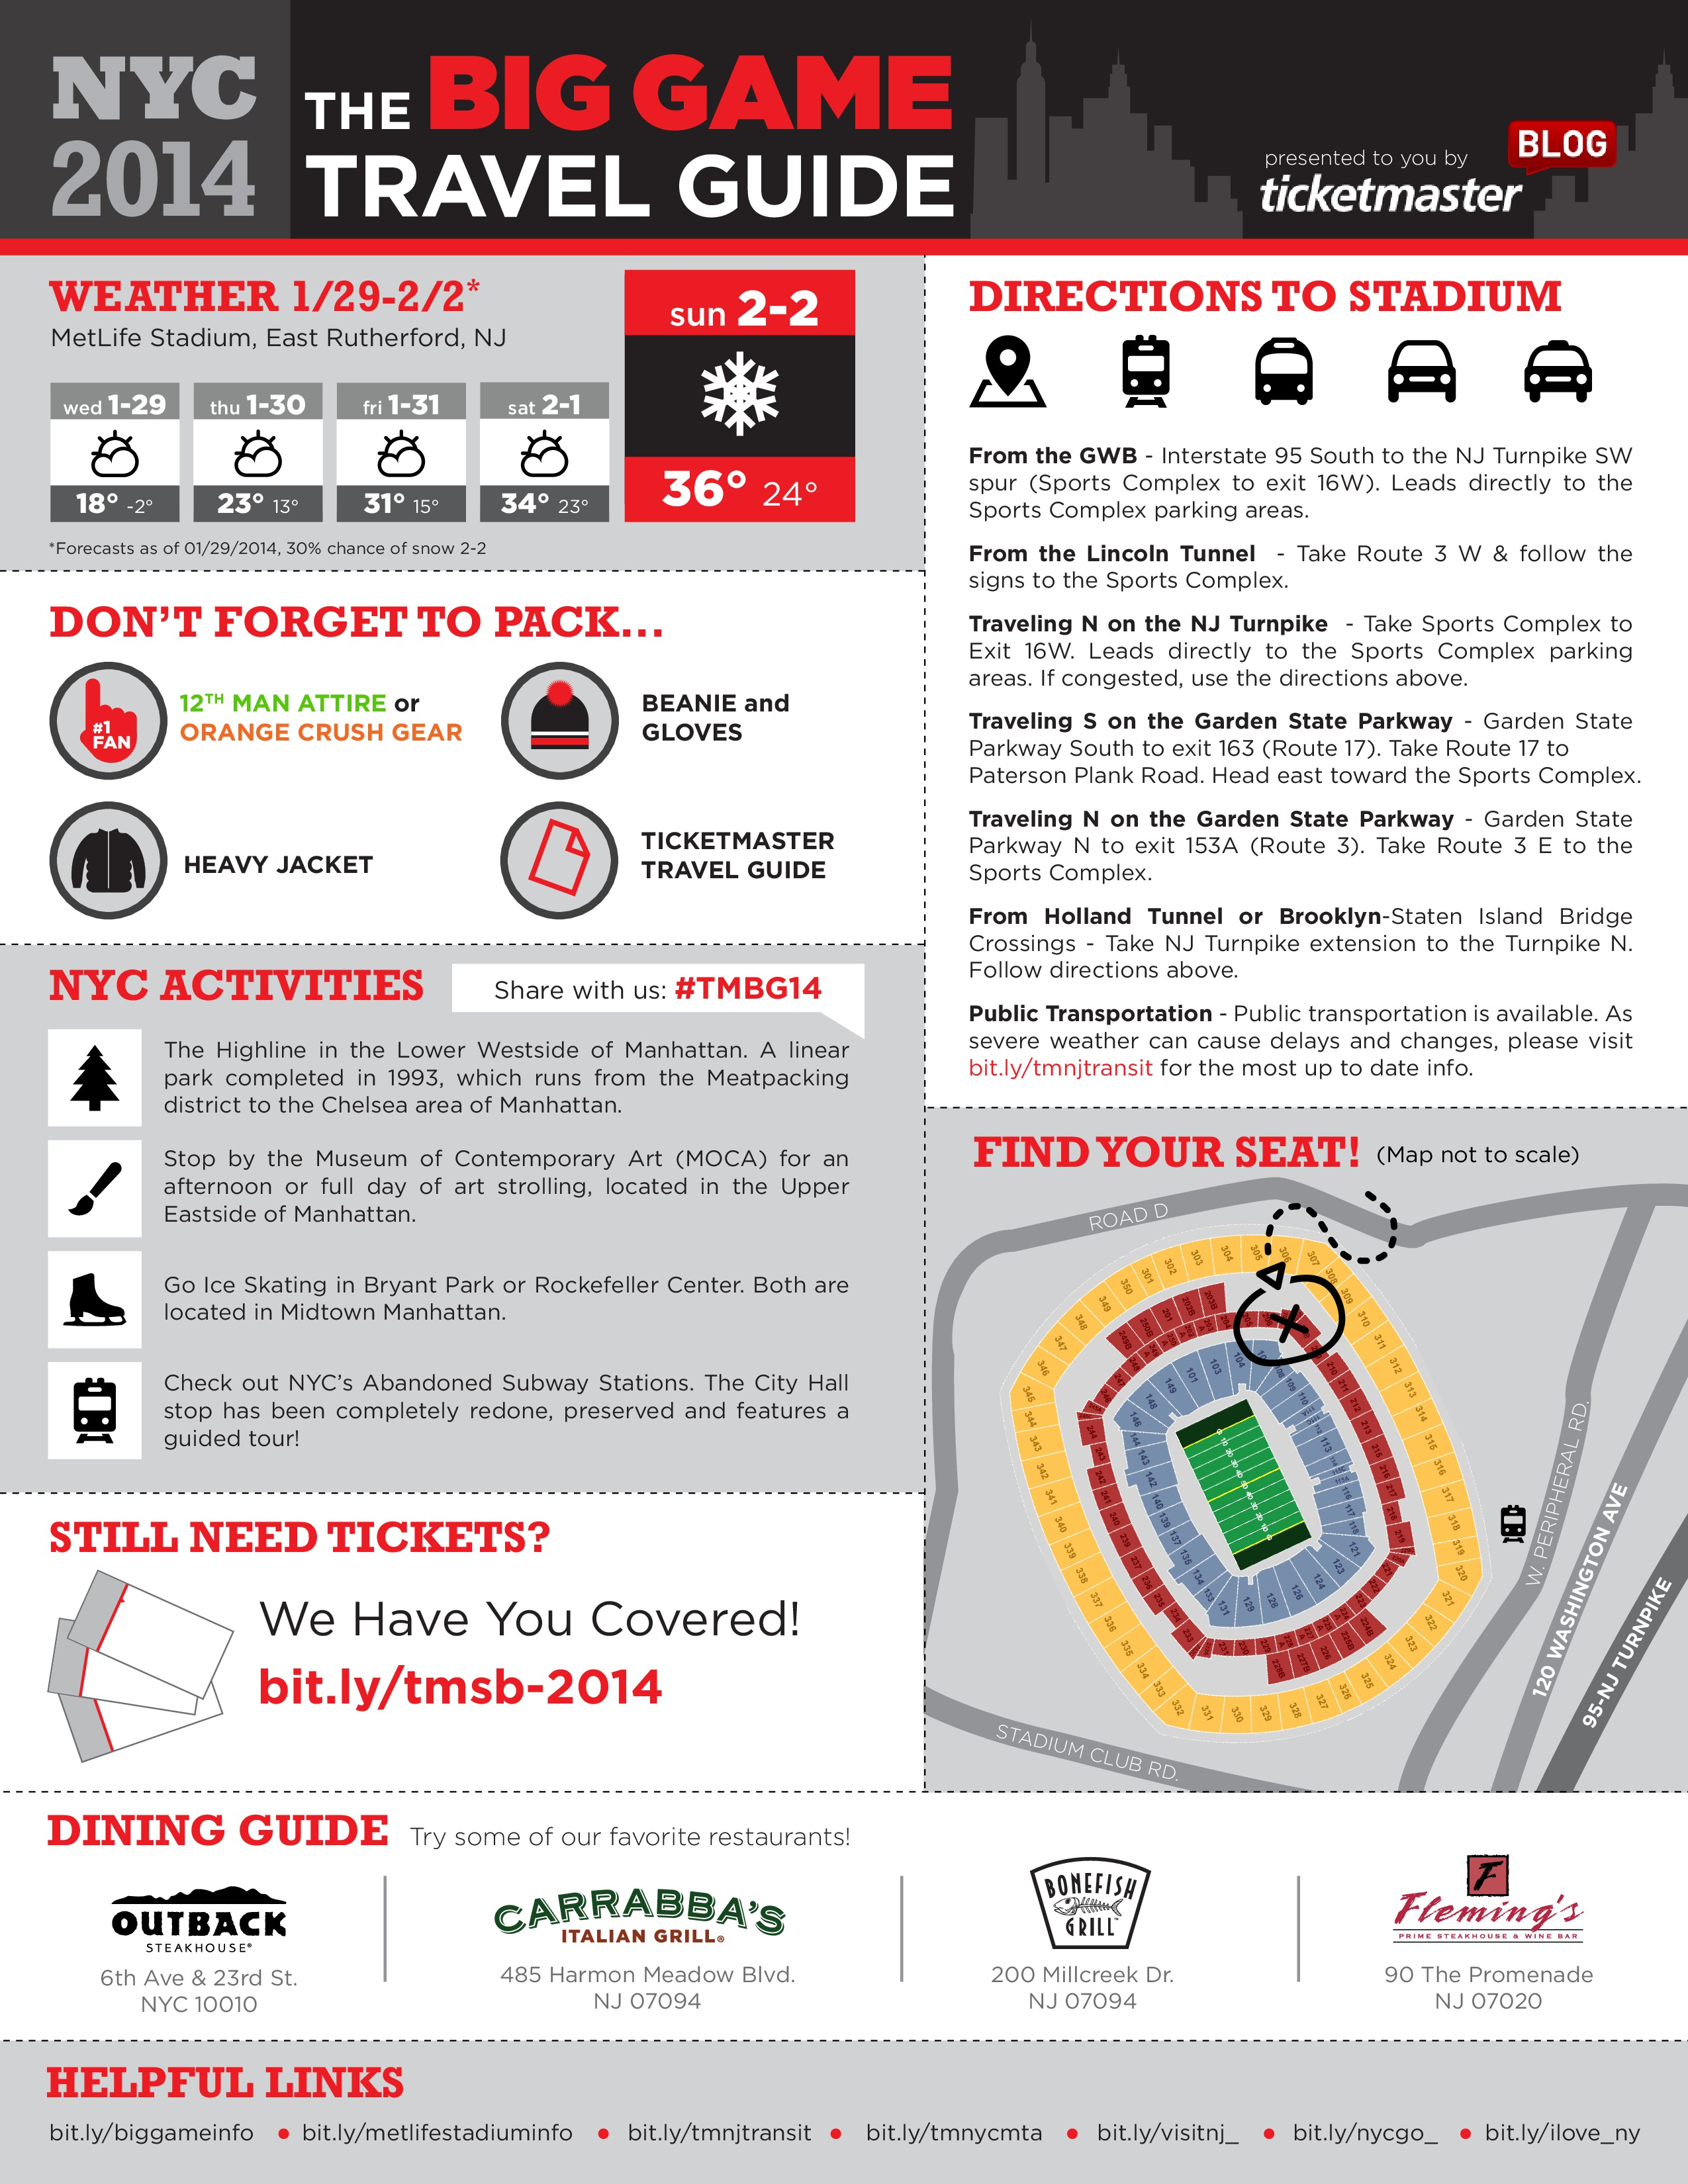 ticketmaster-super-bowl-2014-travel-guide